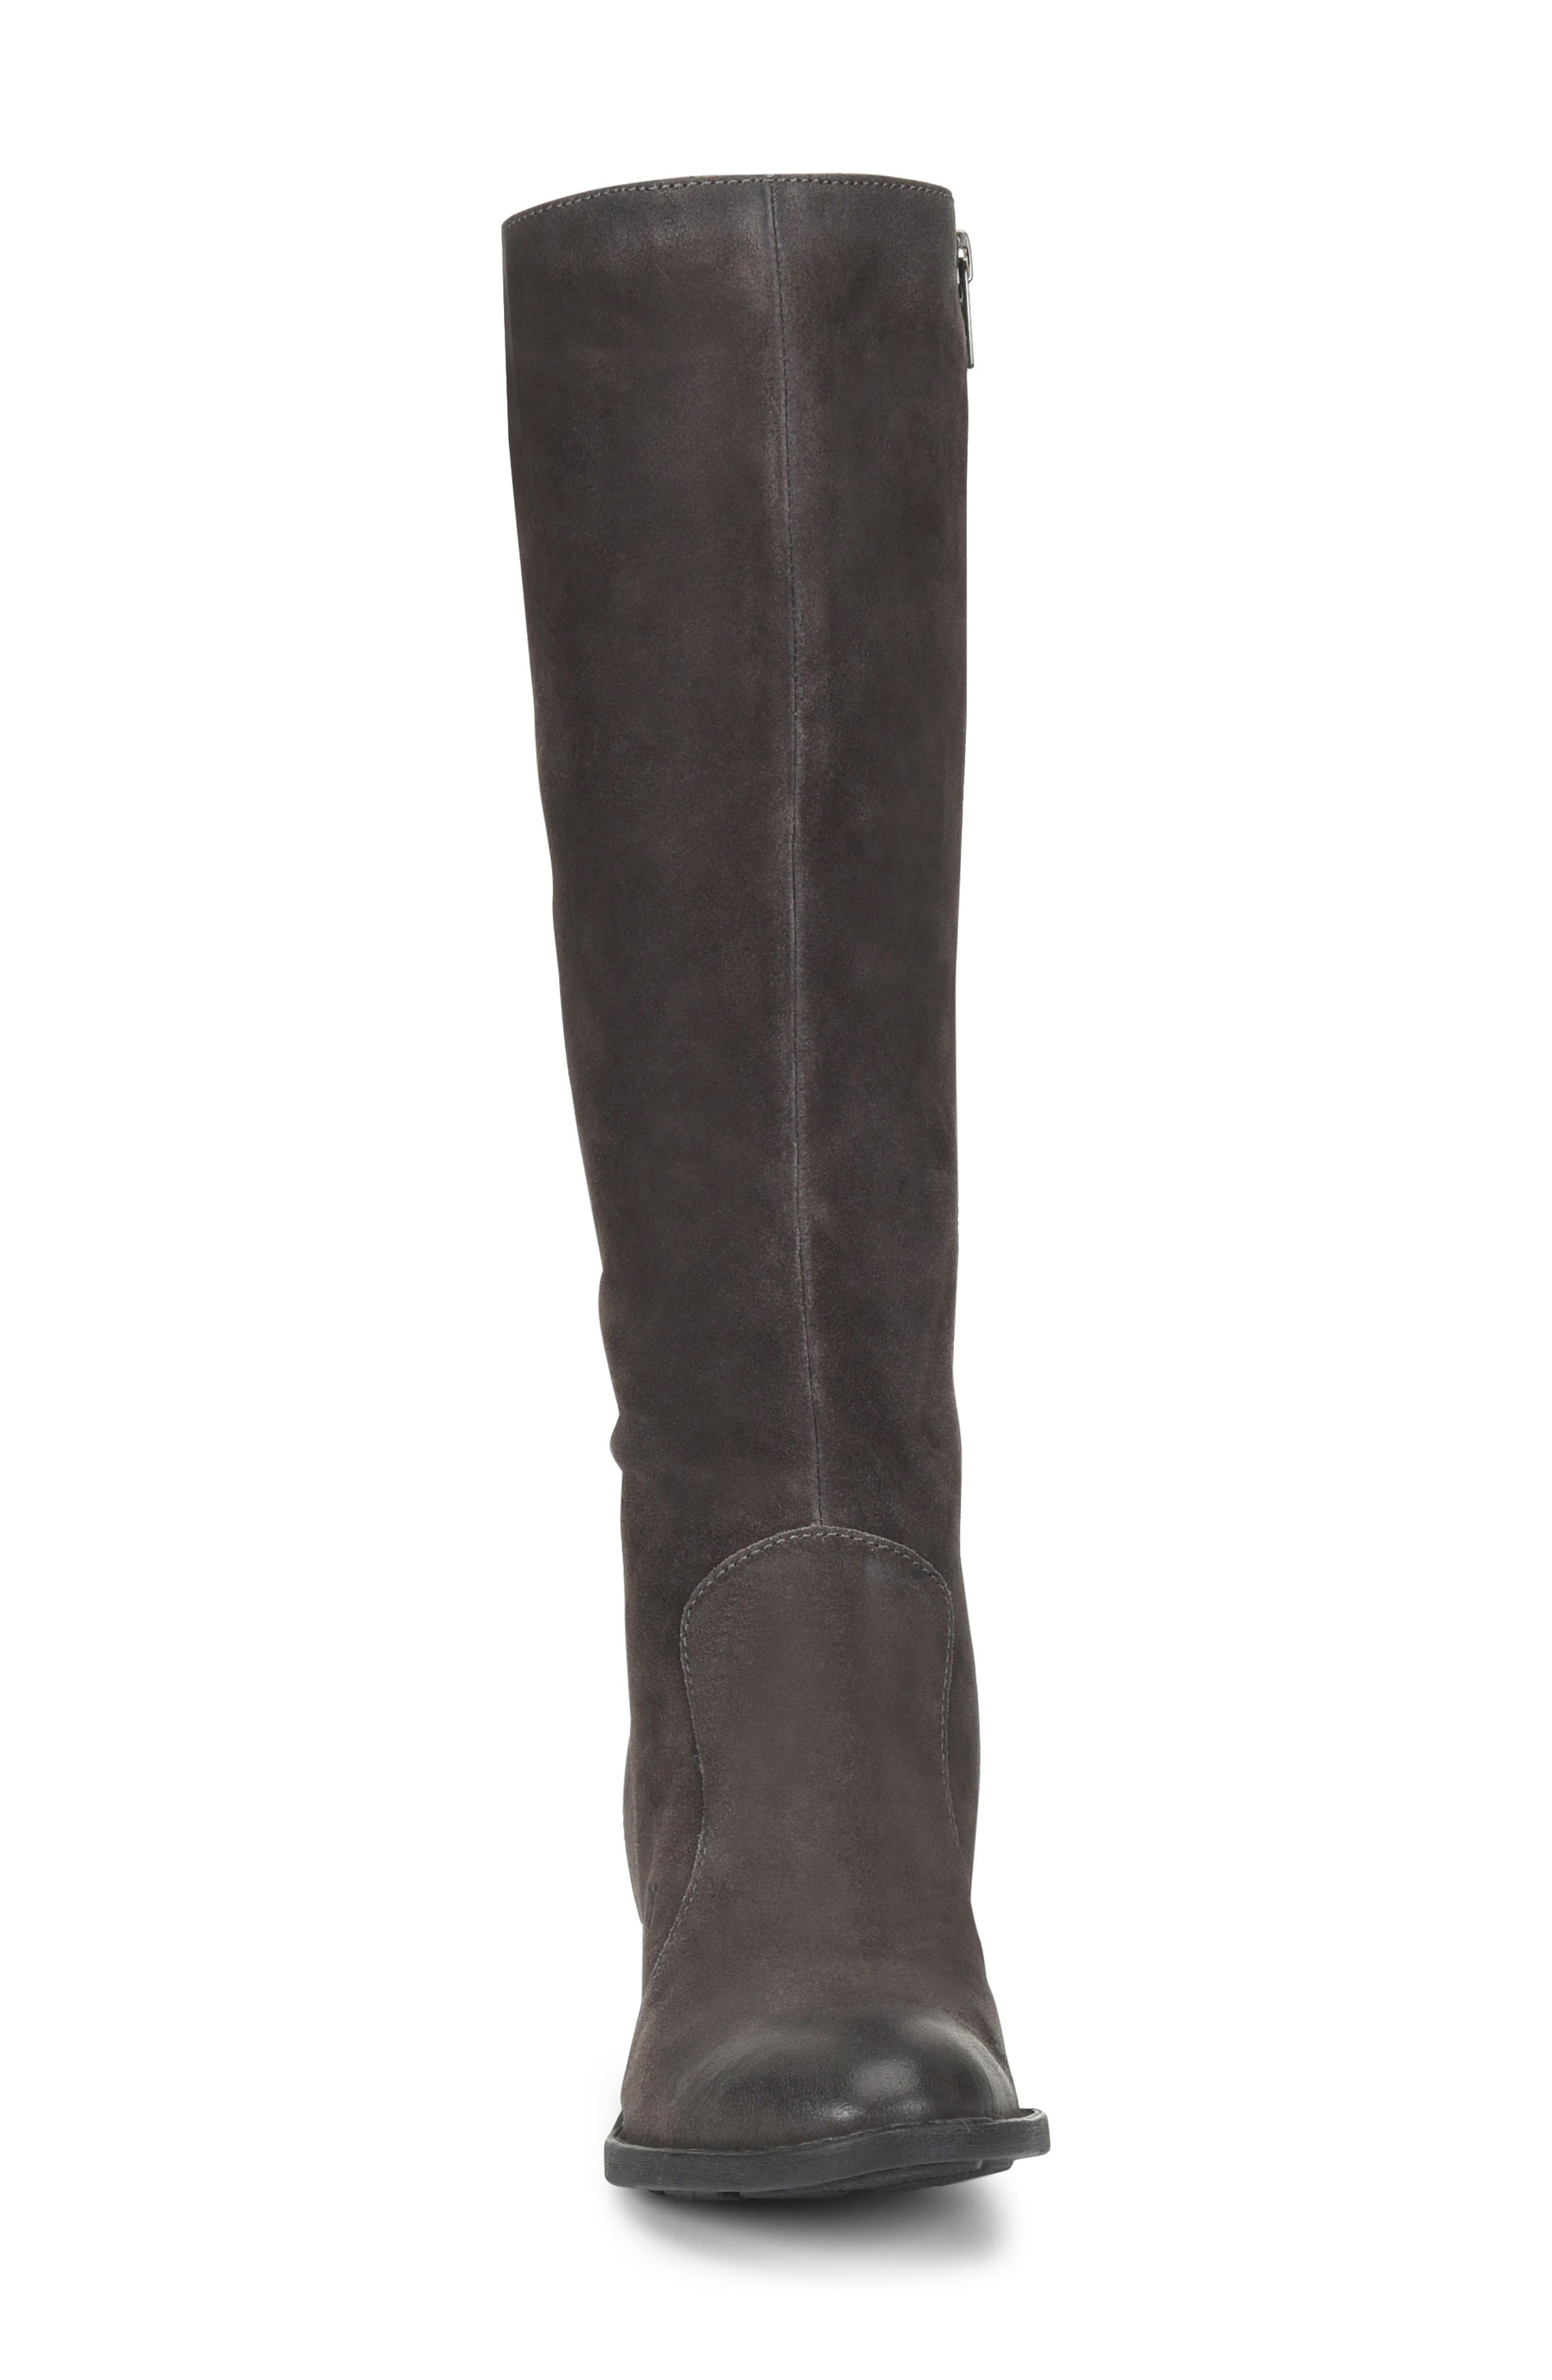 Felicia Knee High Boot,                             Alternate thumbnail 4, color,                             021